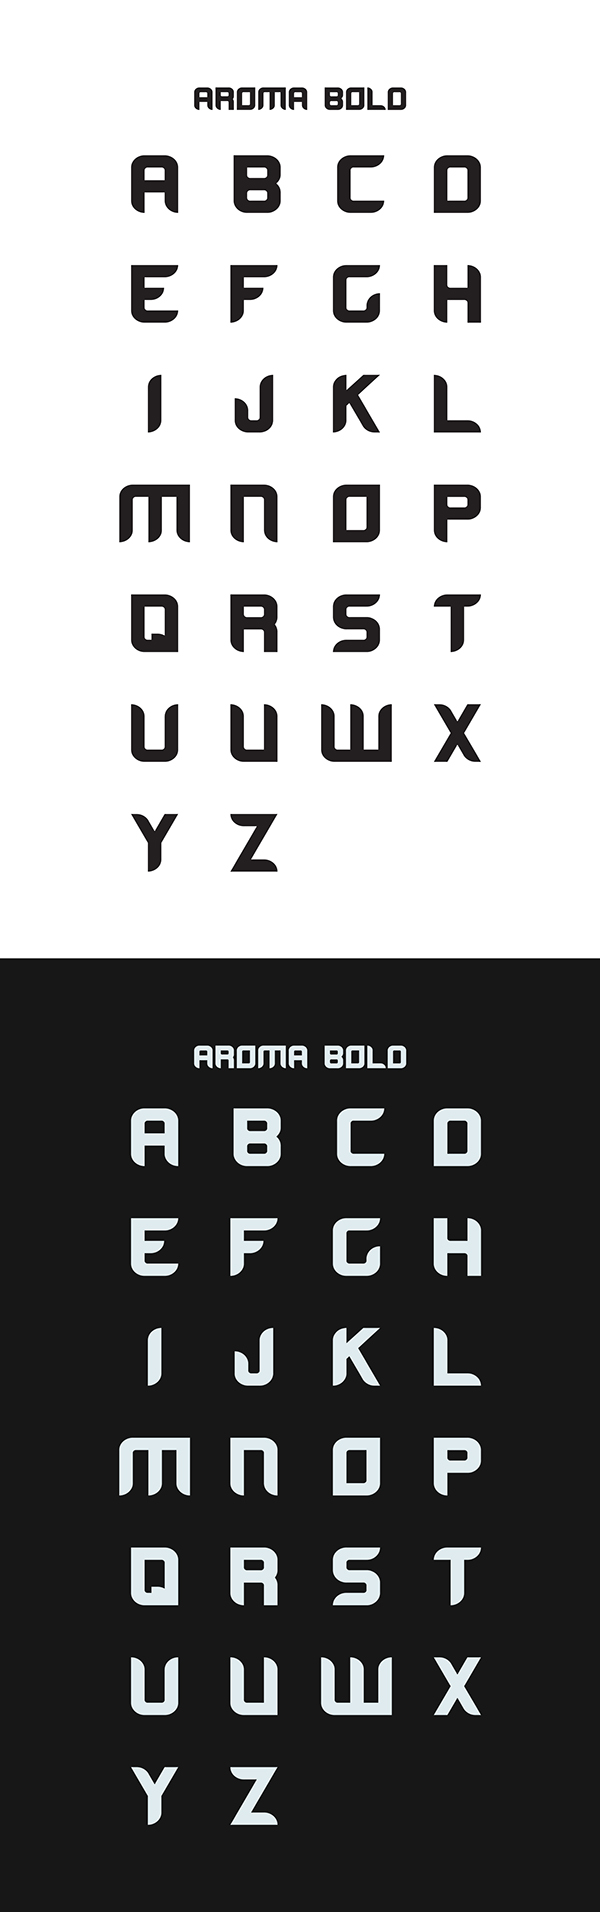 Font I created in two weights, light and bold.